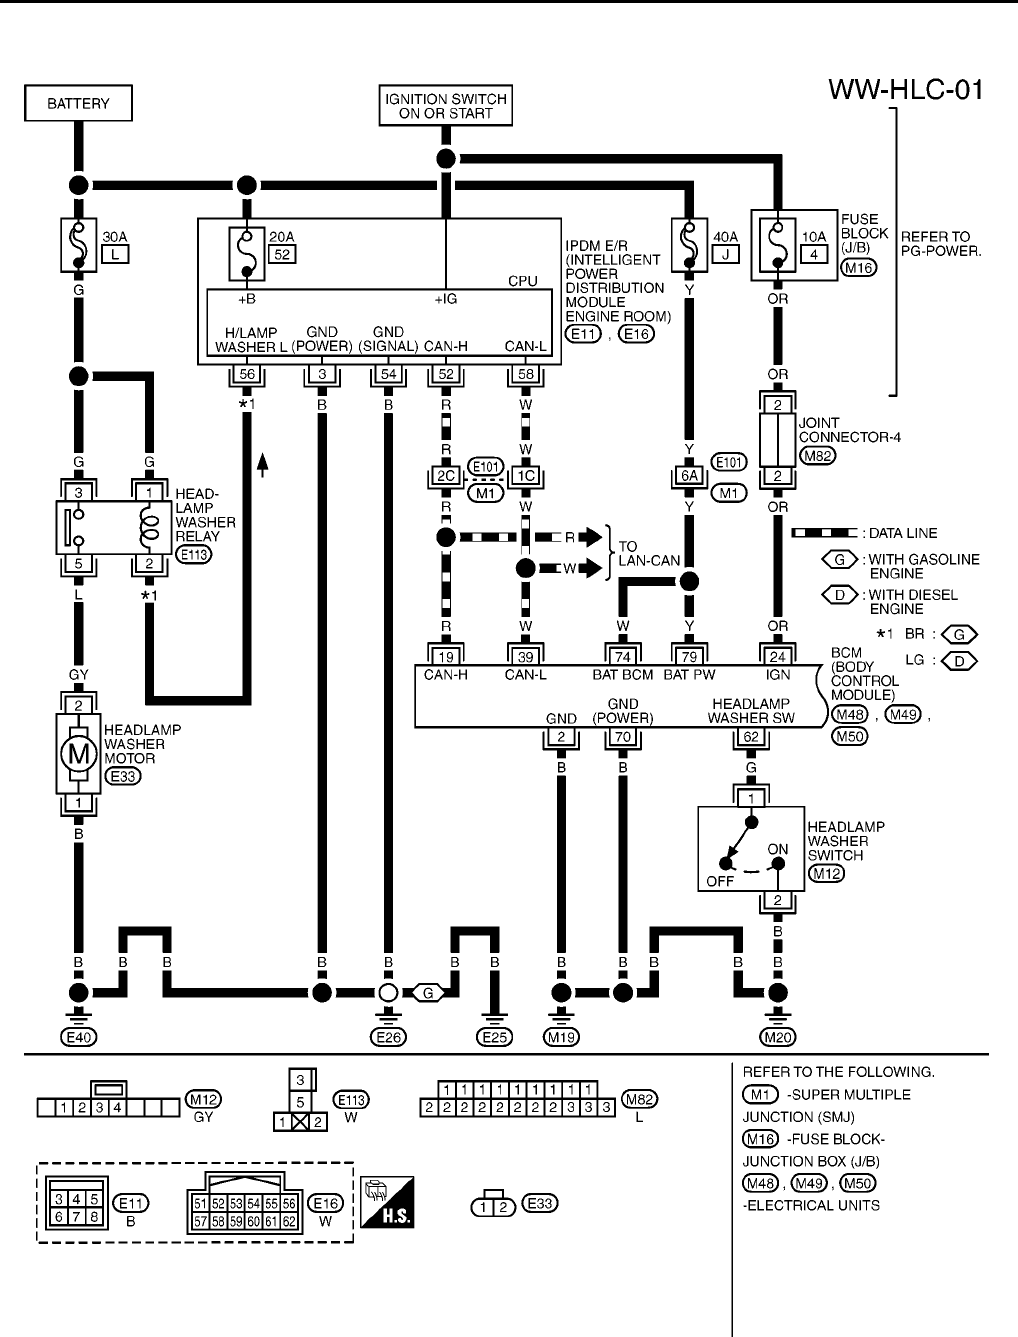 nissan micra wiring diagrams 2003 2005 36 pdf rh manuals co nissan micra k11 wiring diagram nissan micra k12 wiring diagrams